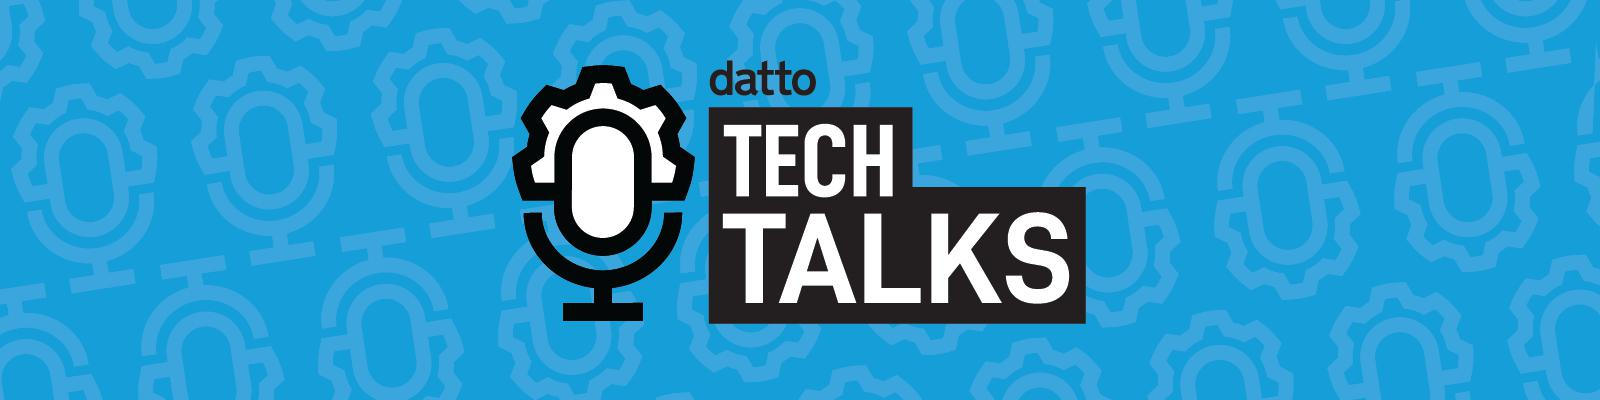 Walt Mossberg Shares Knowledge, Observations on Technology in Datto Tech Talk